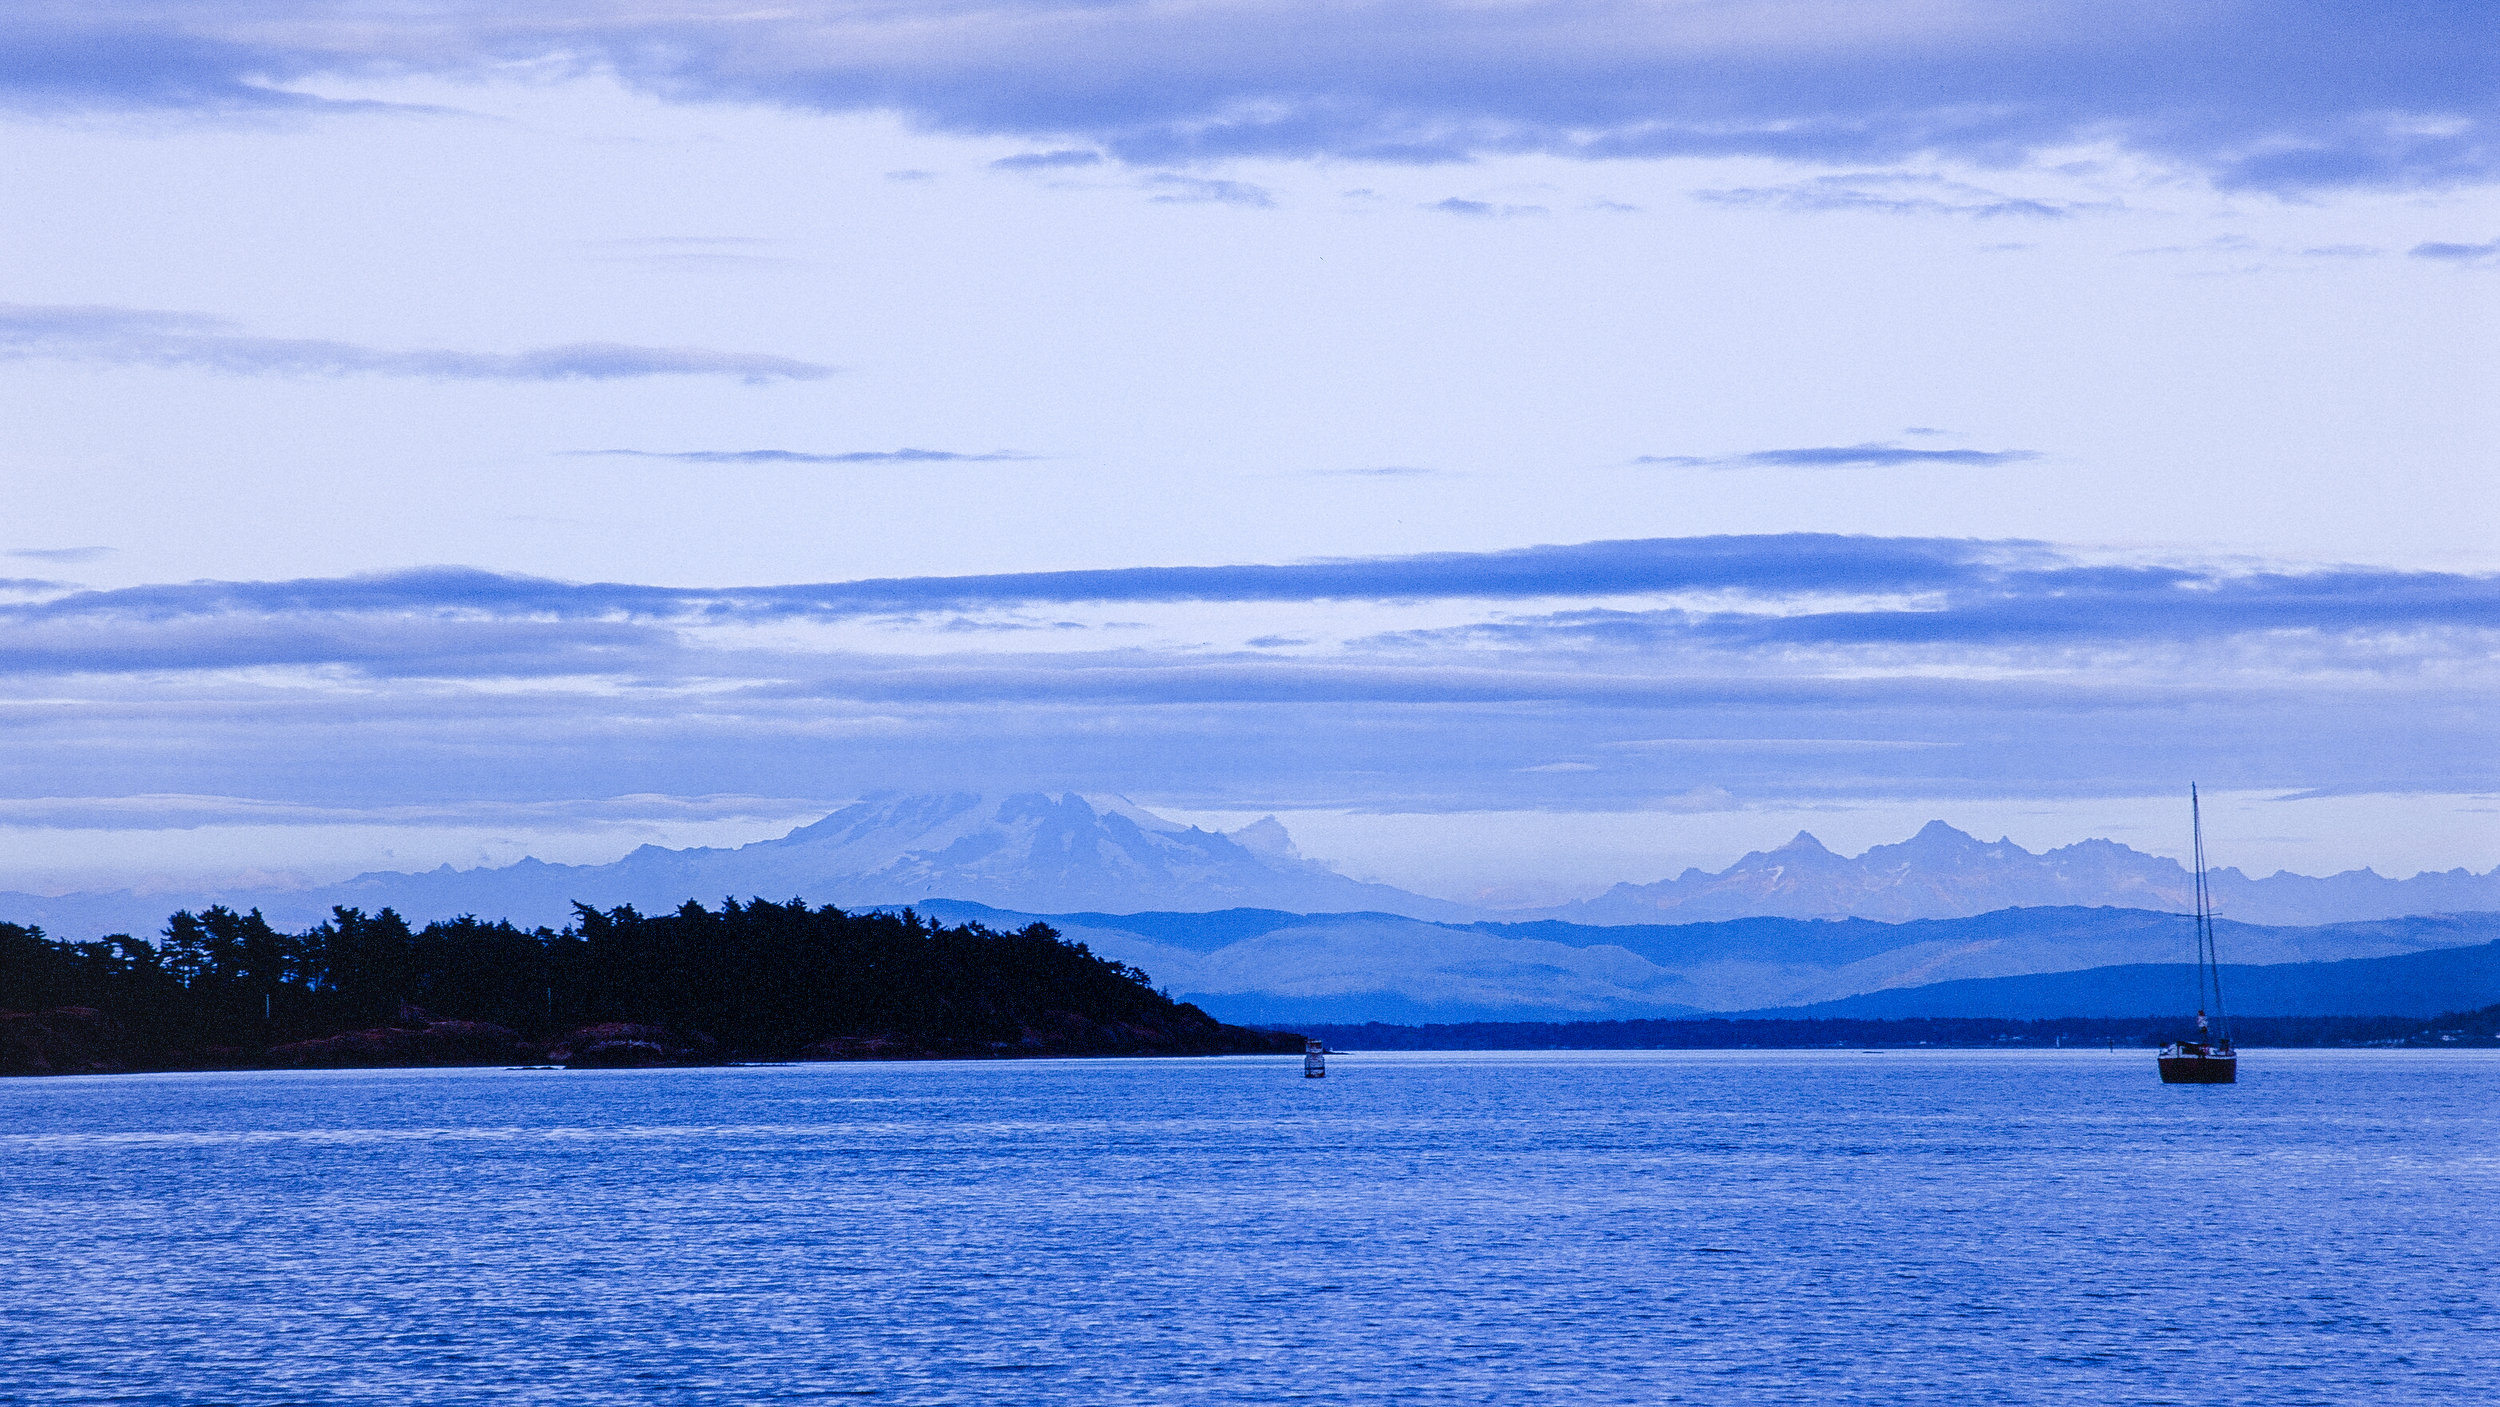 Mt. Baker from Echo Bay, Sucia Island, Washington. Fuji Velvia RVP 100